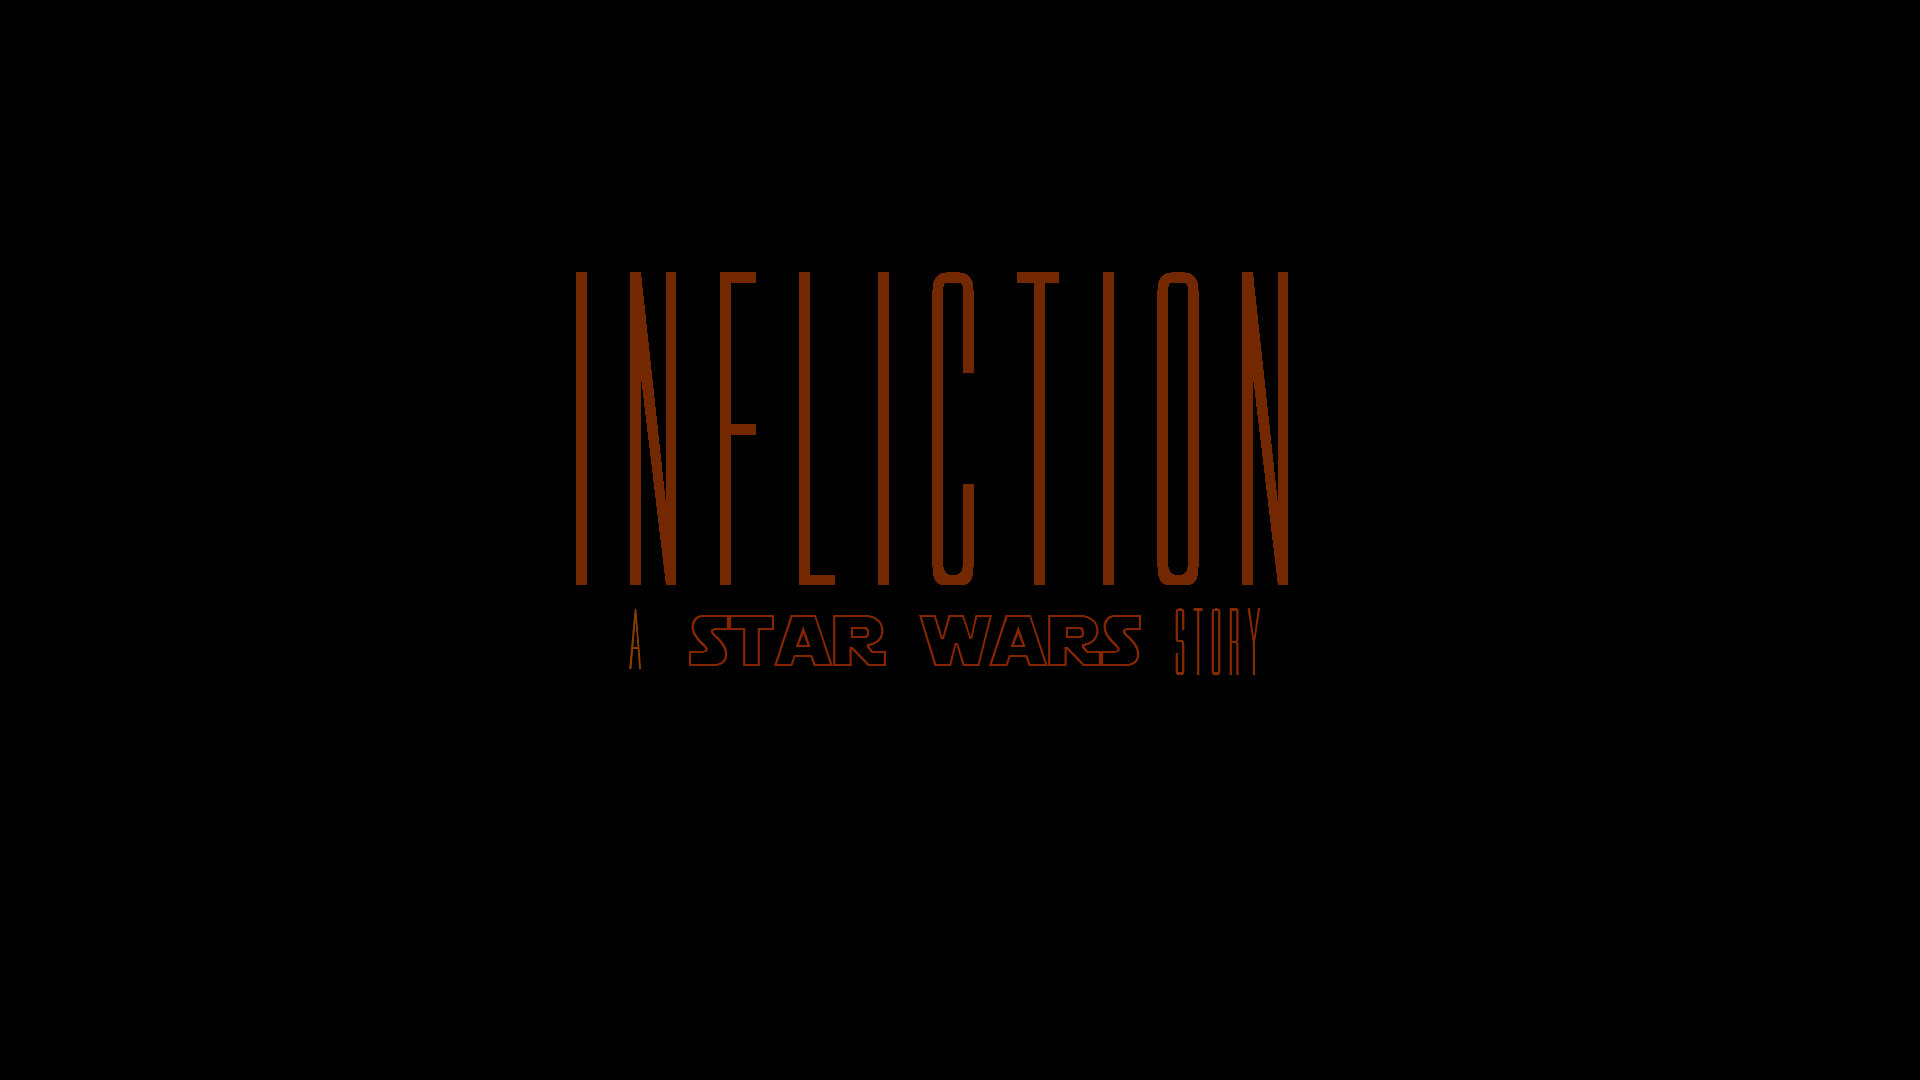 Infliction: A Star Wars Story (film)